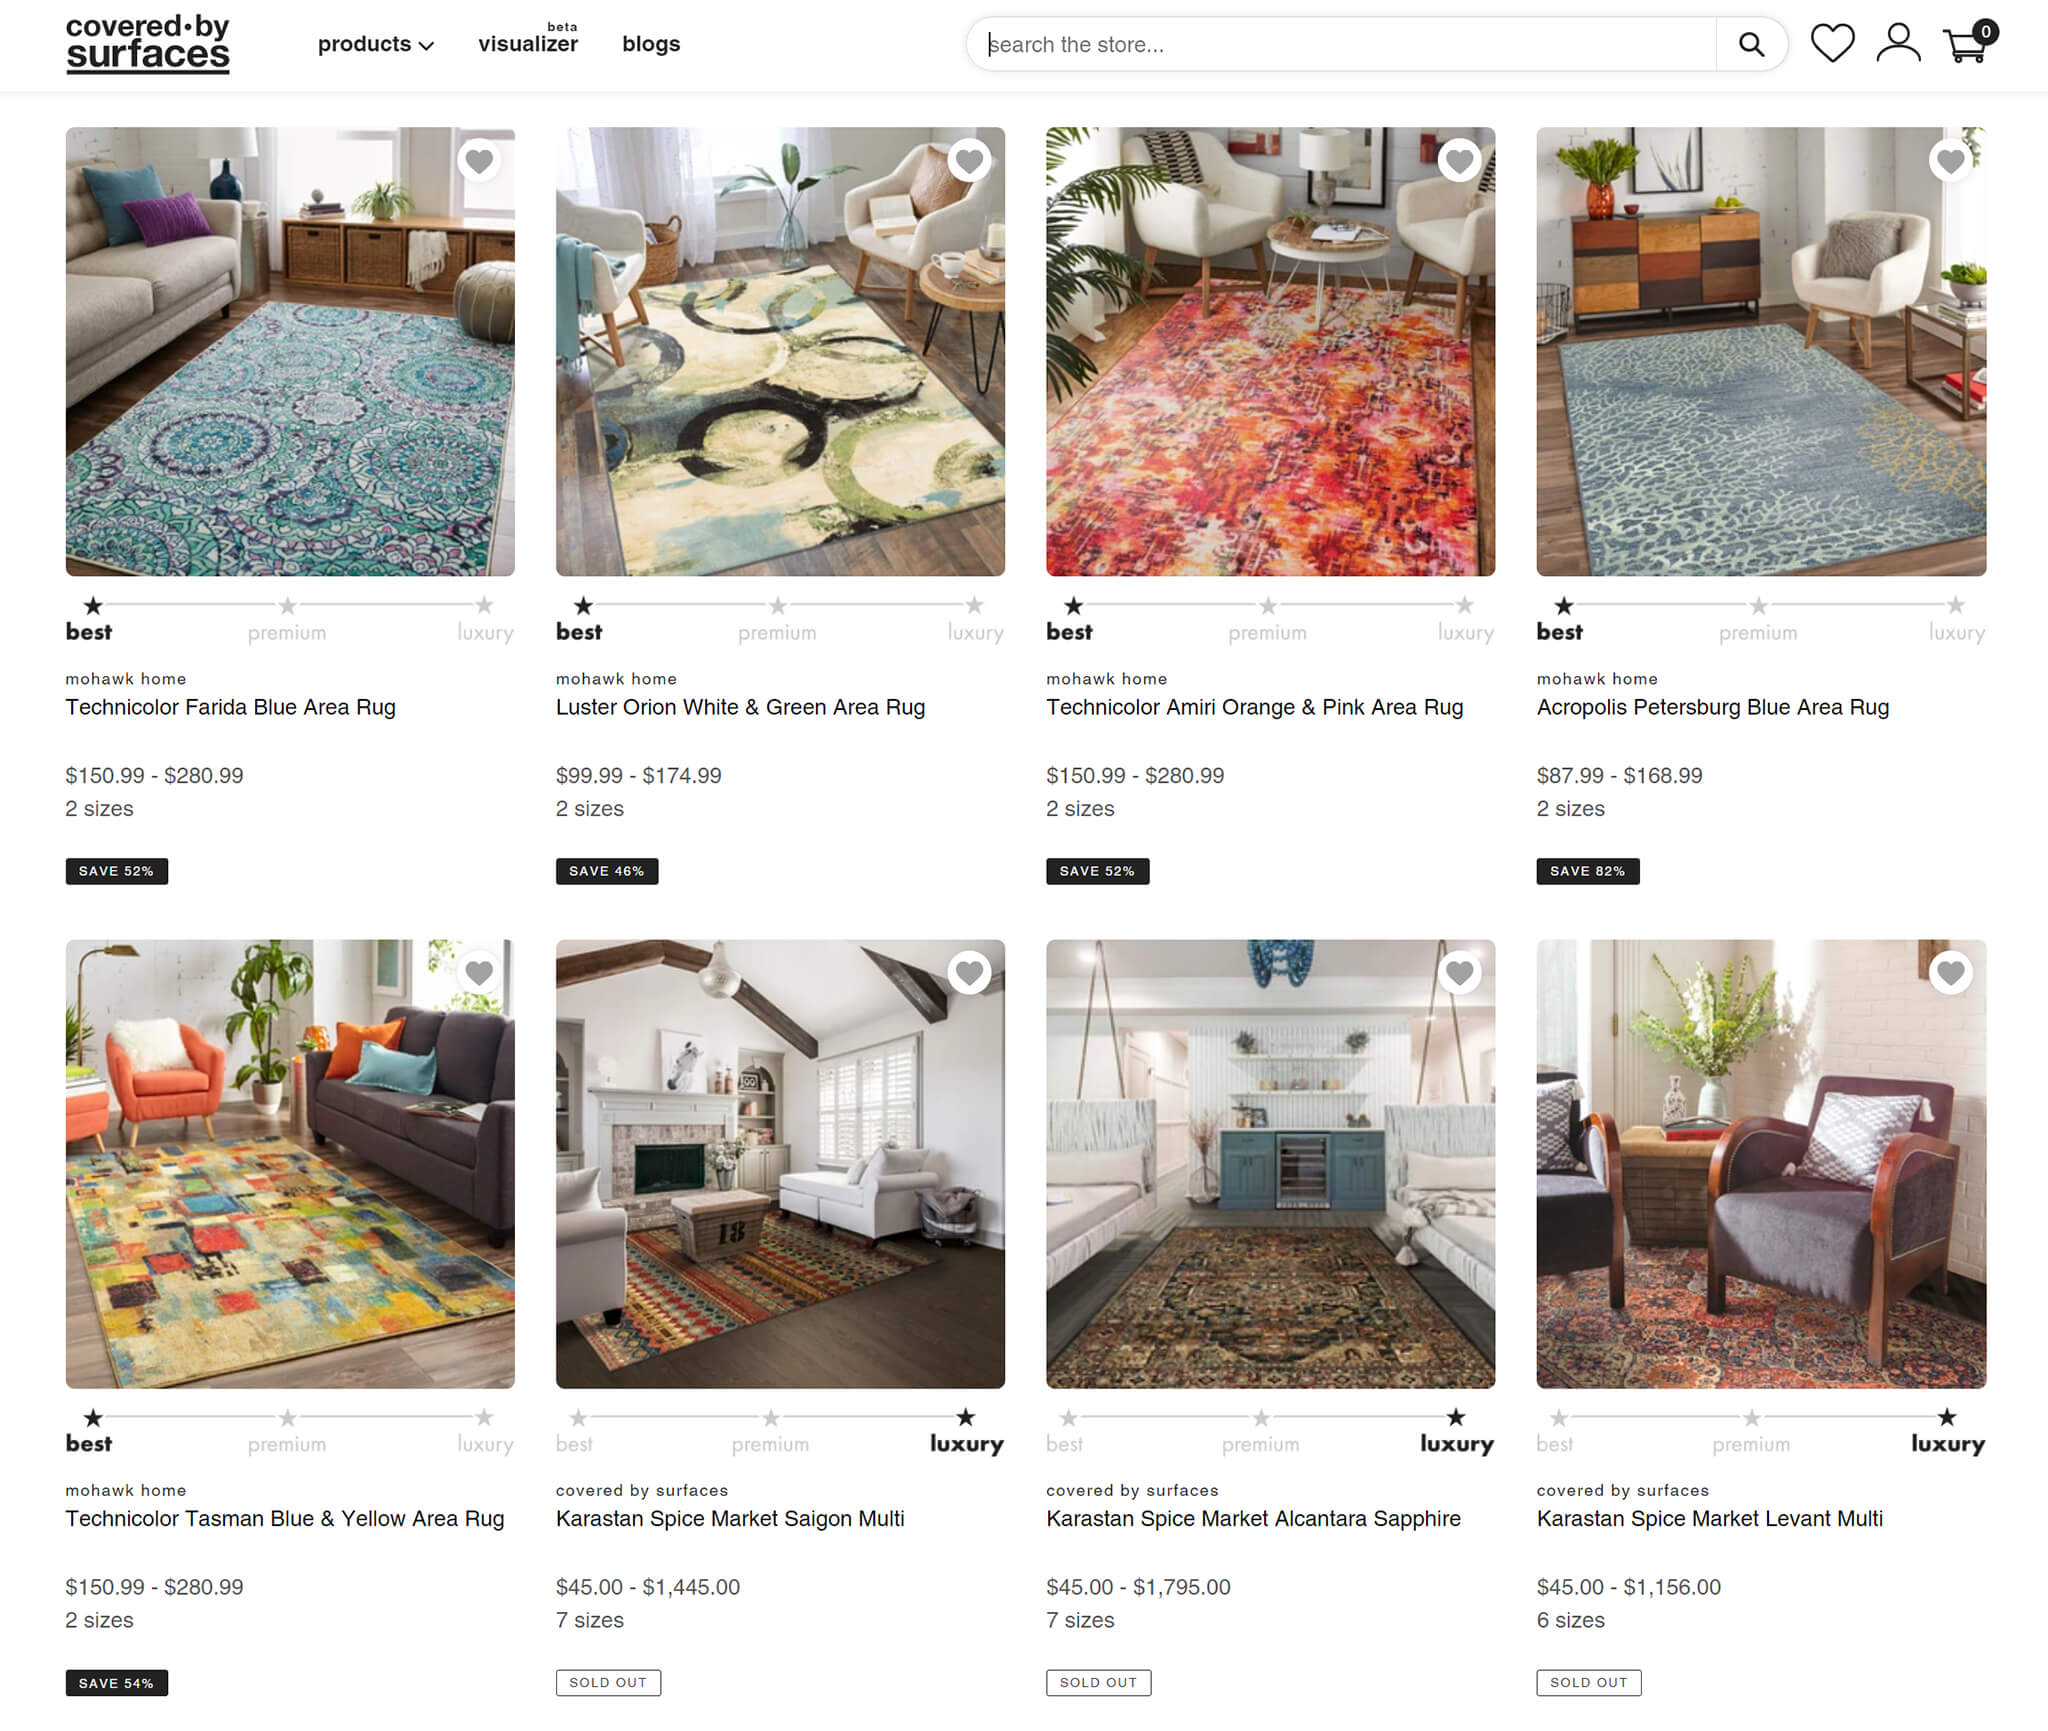 coveredbysurfaces website for area rugs of all shapes and sizes like 8x10, 8x11, or square area rugs, circle area rugs, etc.